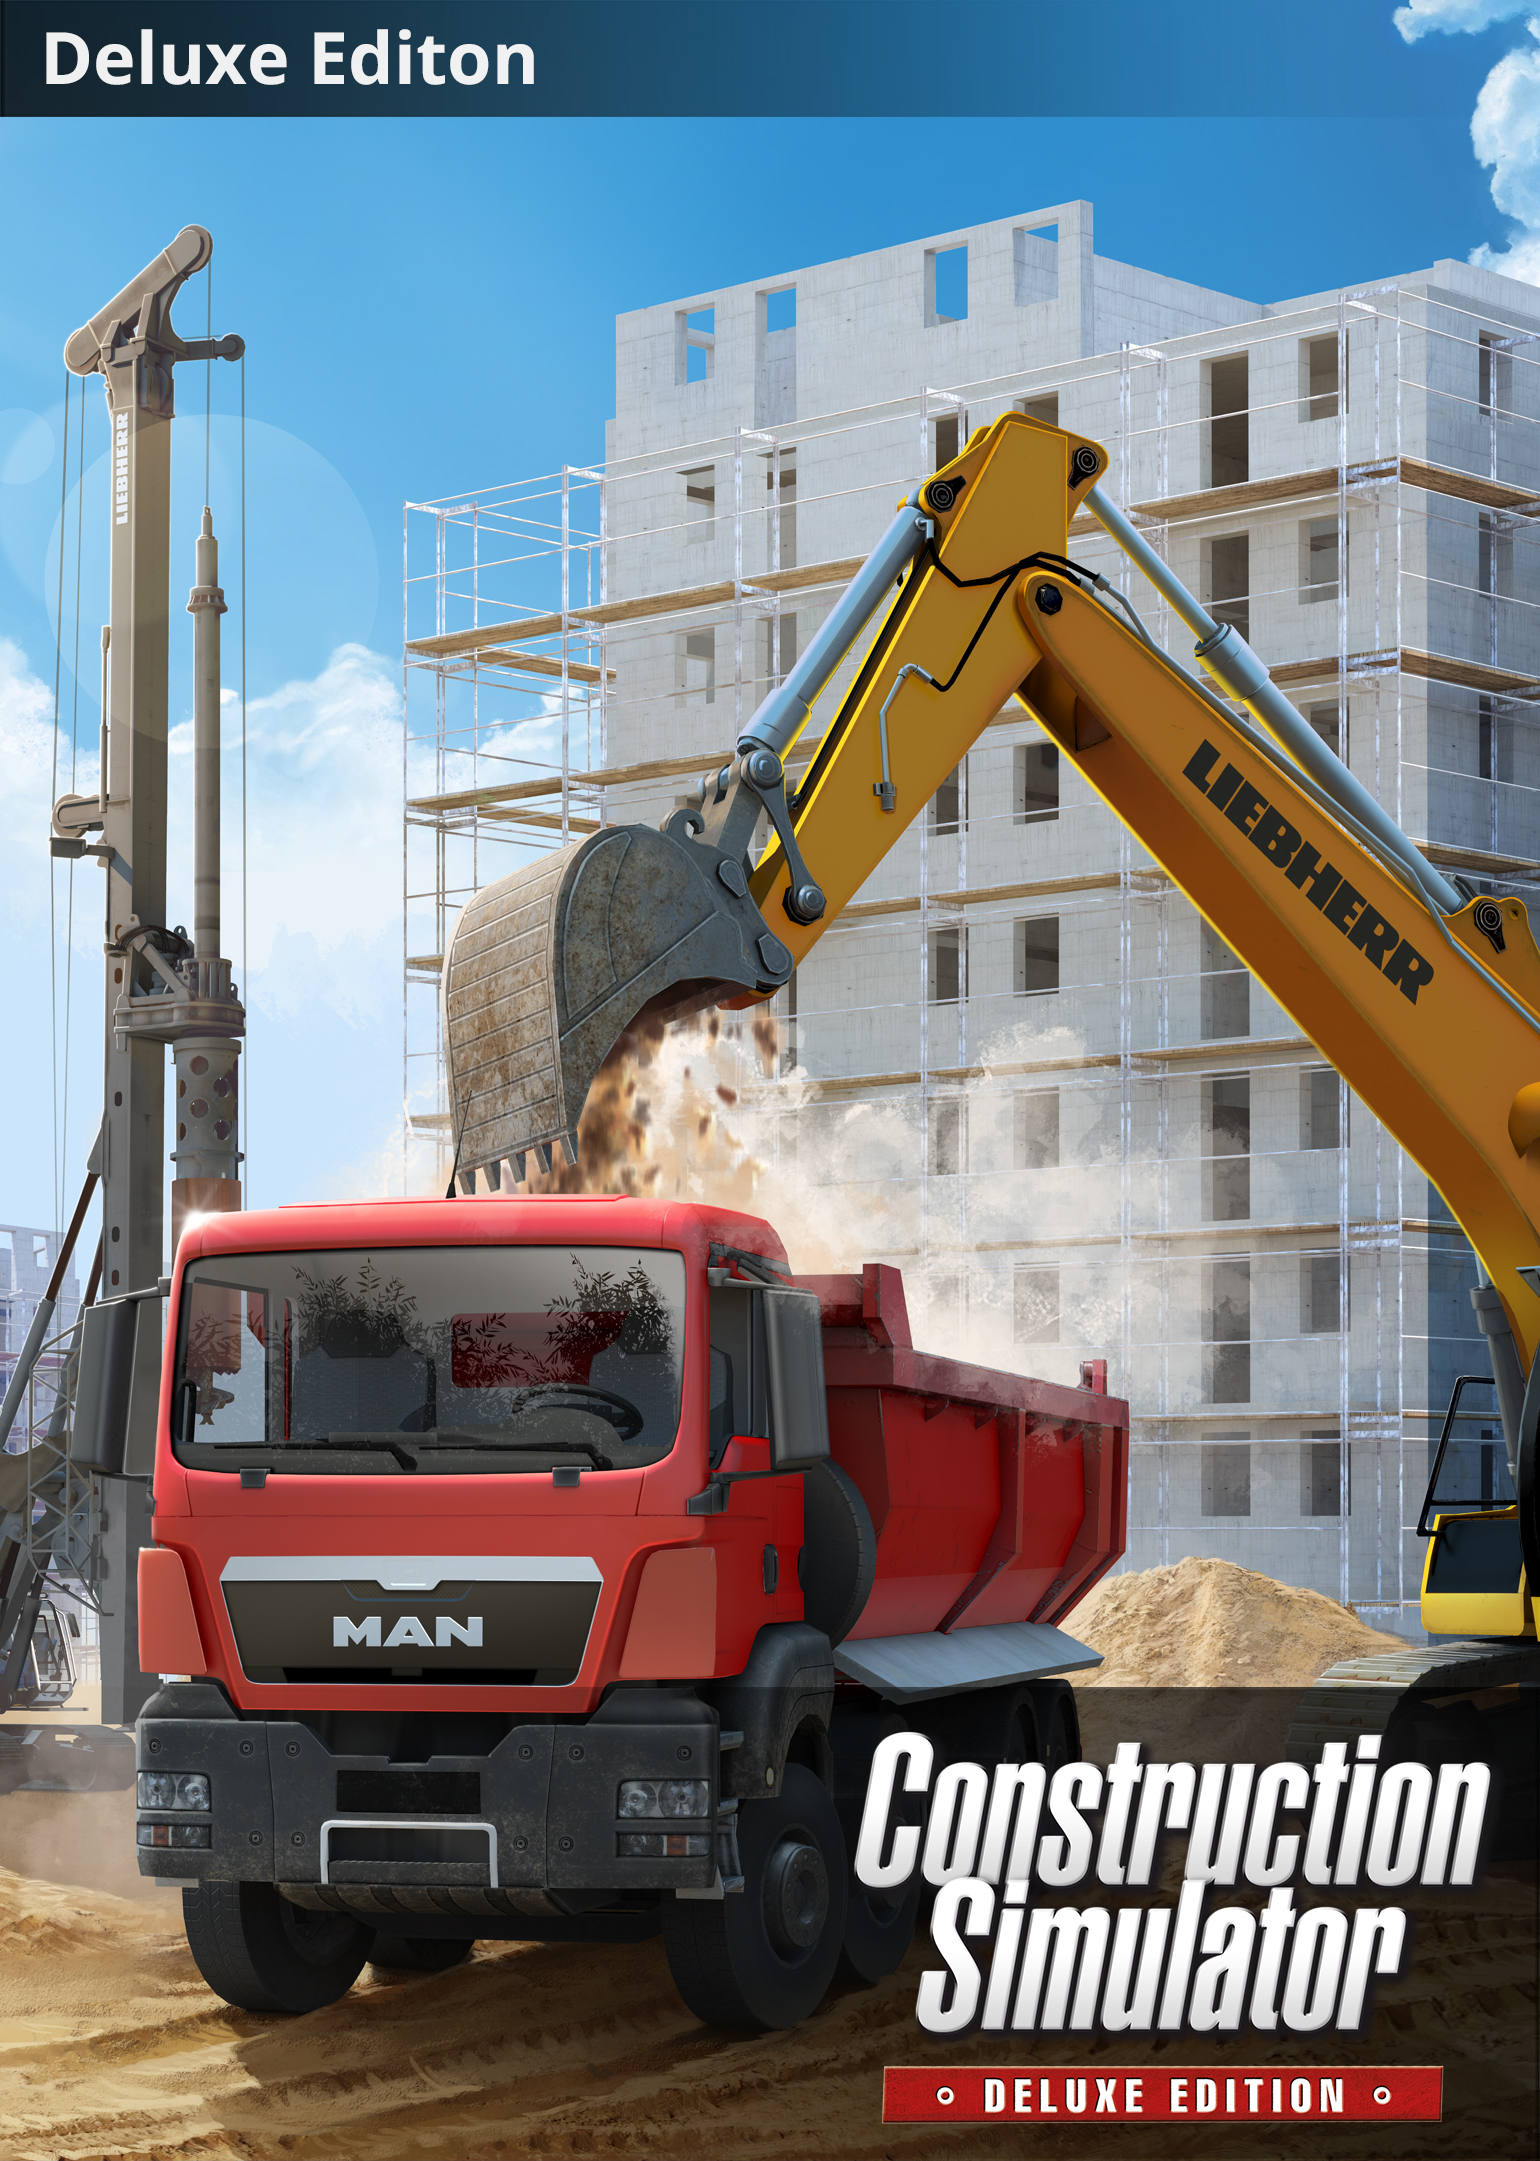 Construction Simulator: Deluxe Edition [Online Game Code] by astragon Entertainment GmbH